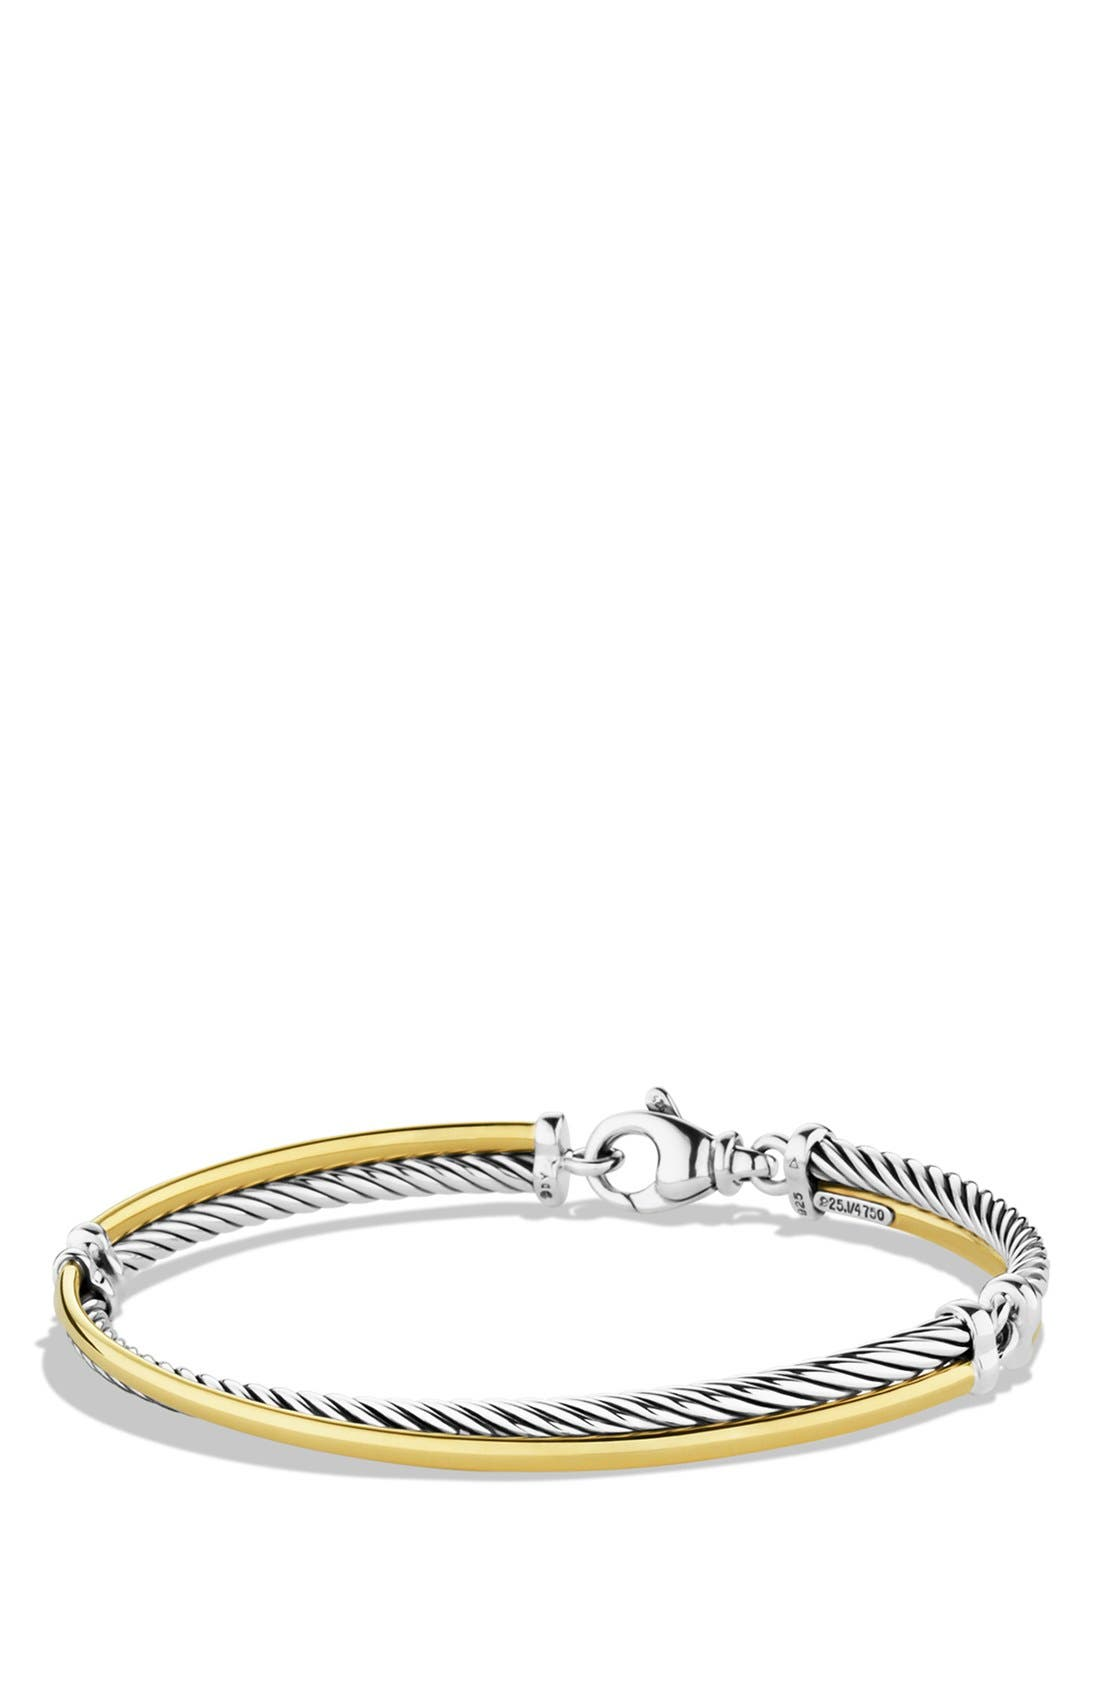 'Crossover' Bracelet with Gold,                             Main thumbnail 1, color,                             040